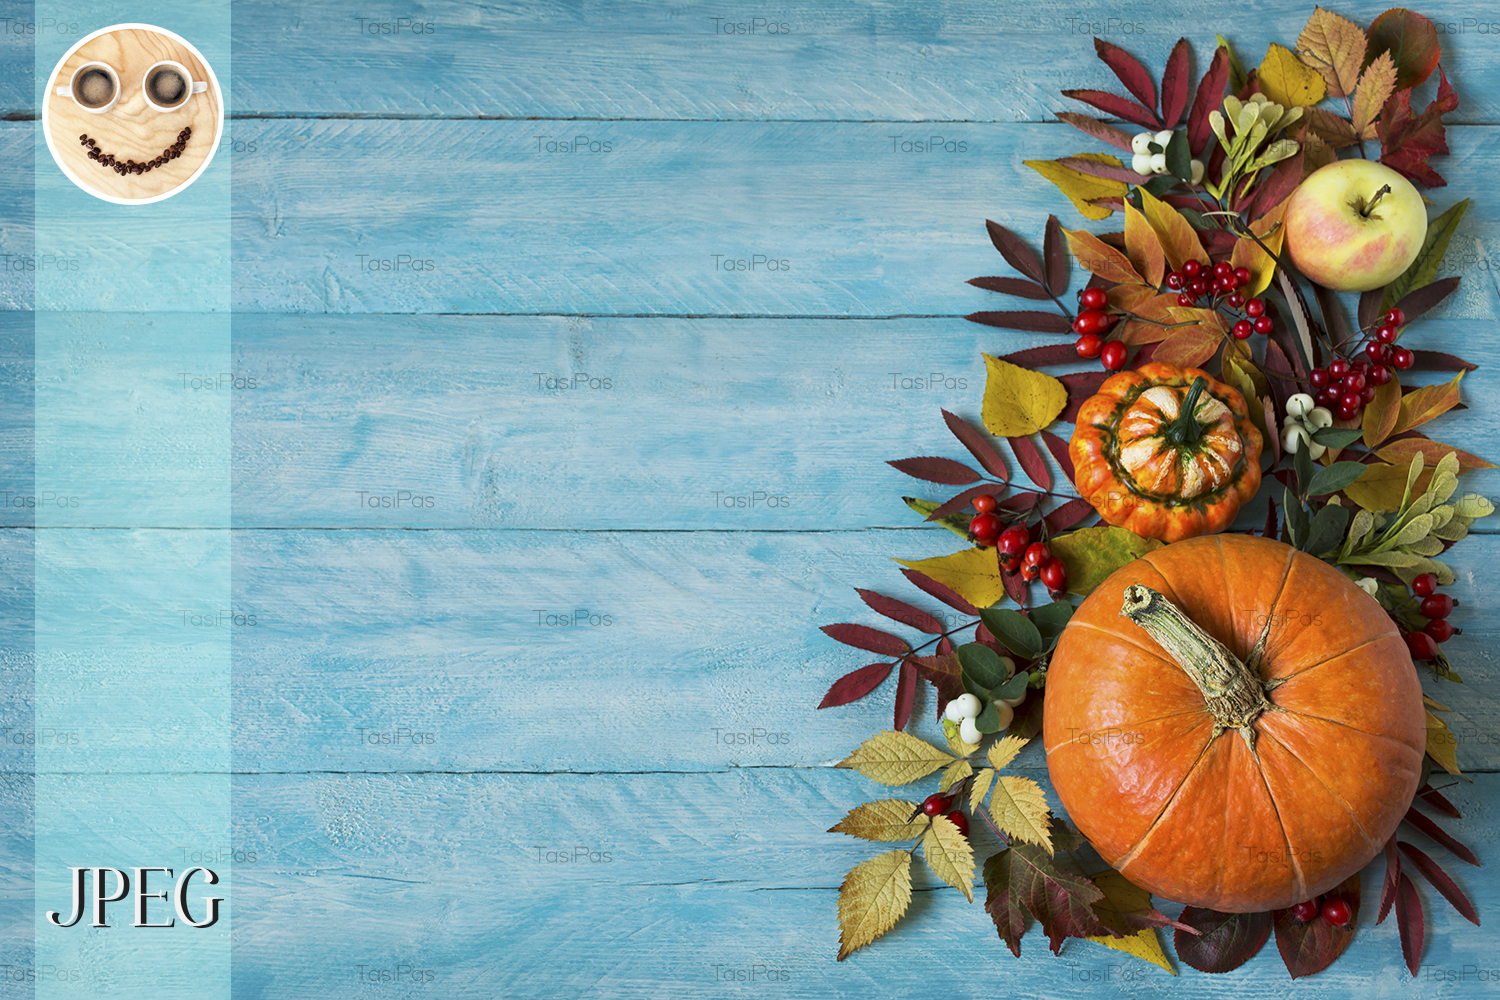 Download Free Fall Border Of Apples Berries Pumpkins Graphic By Tasipas for Cricut Explore, Silhouette and other cutting machines.